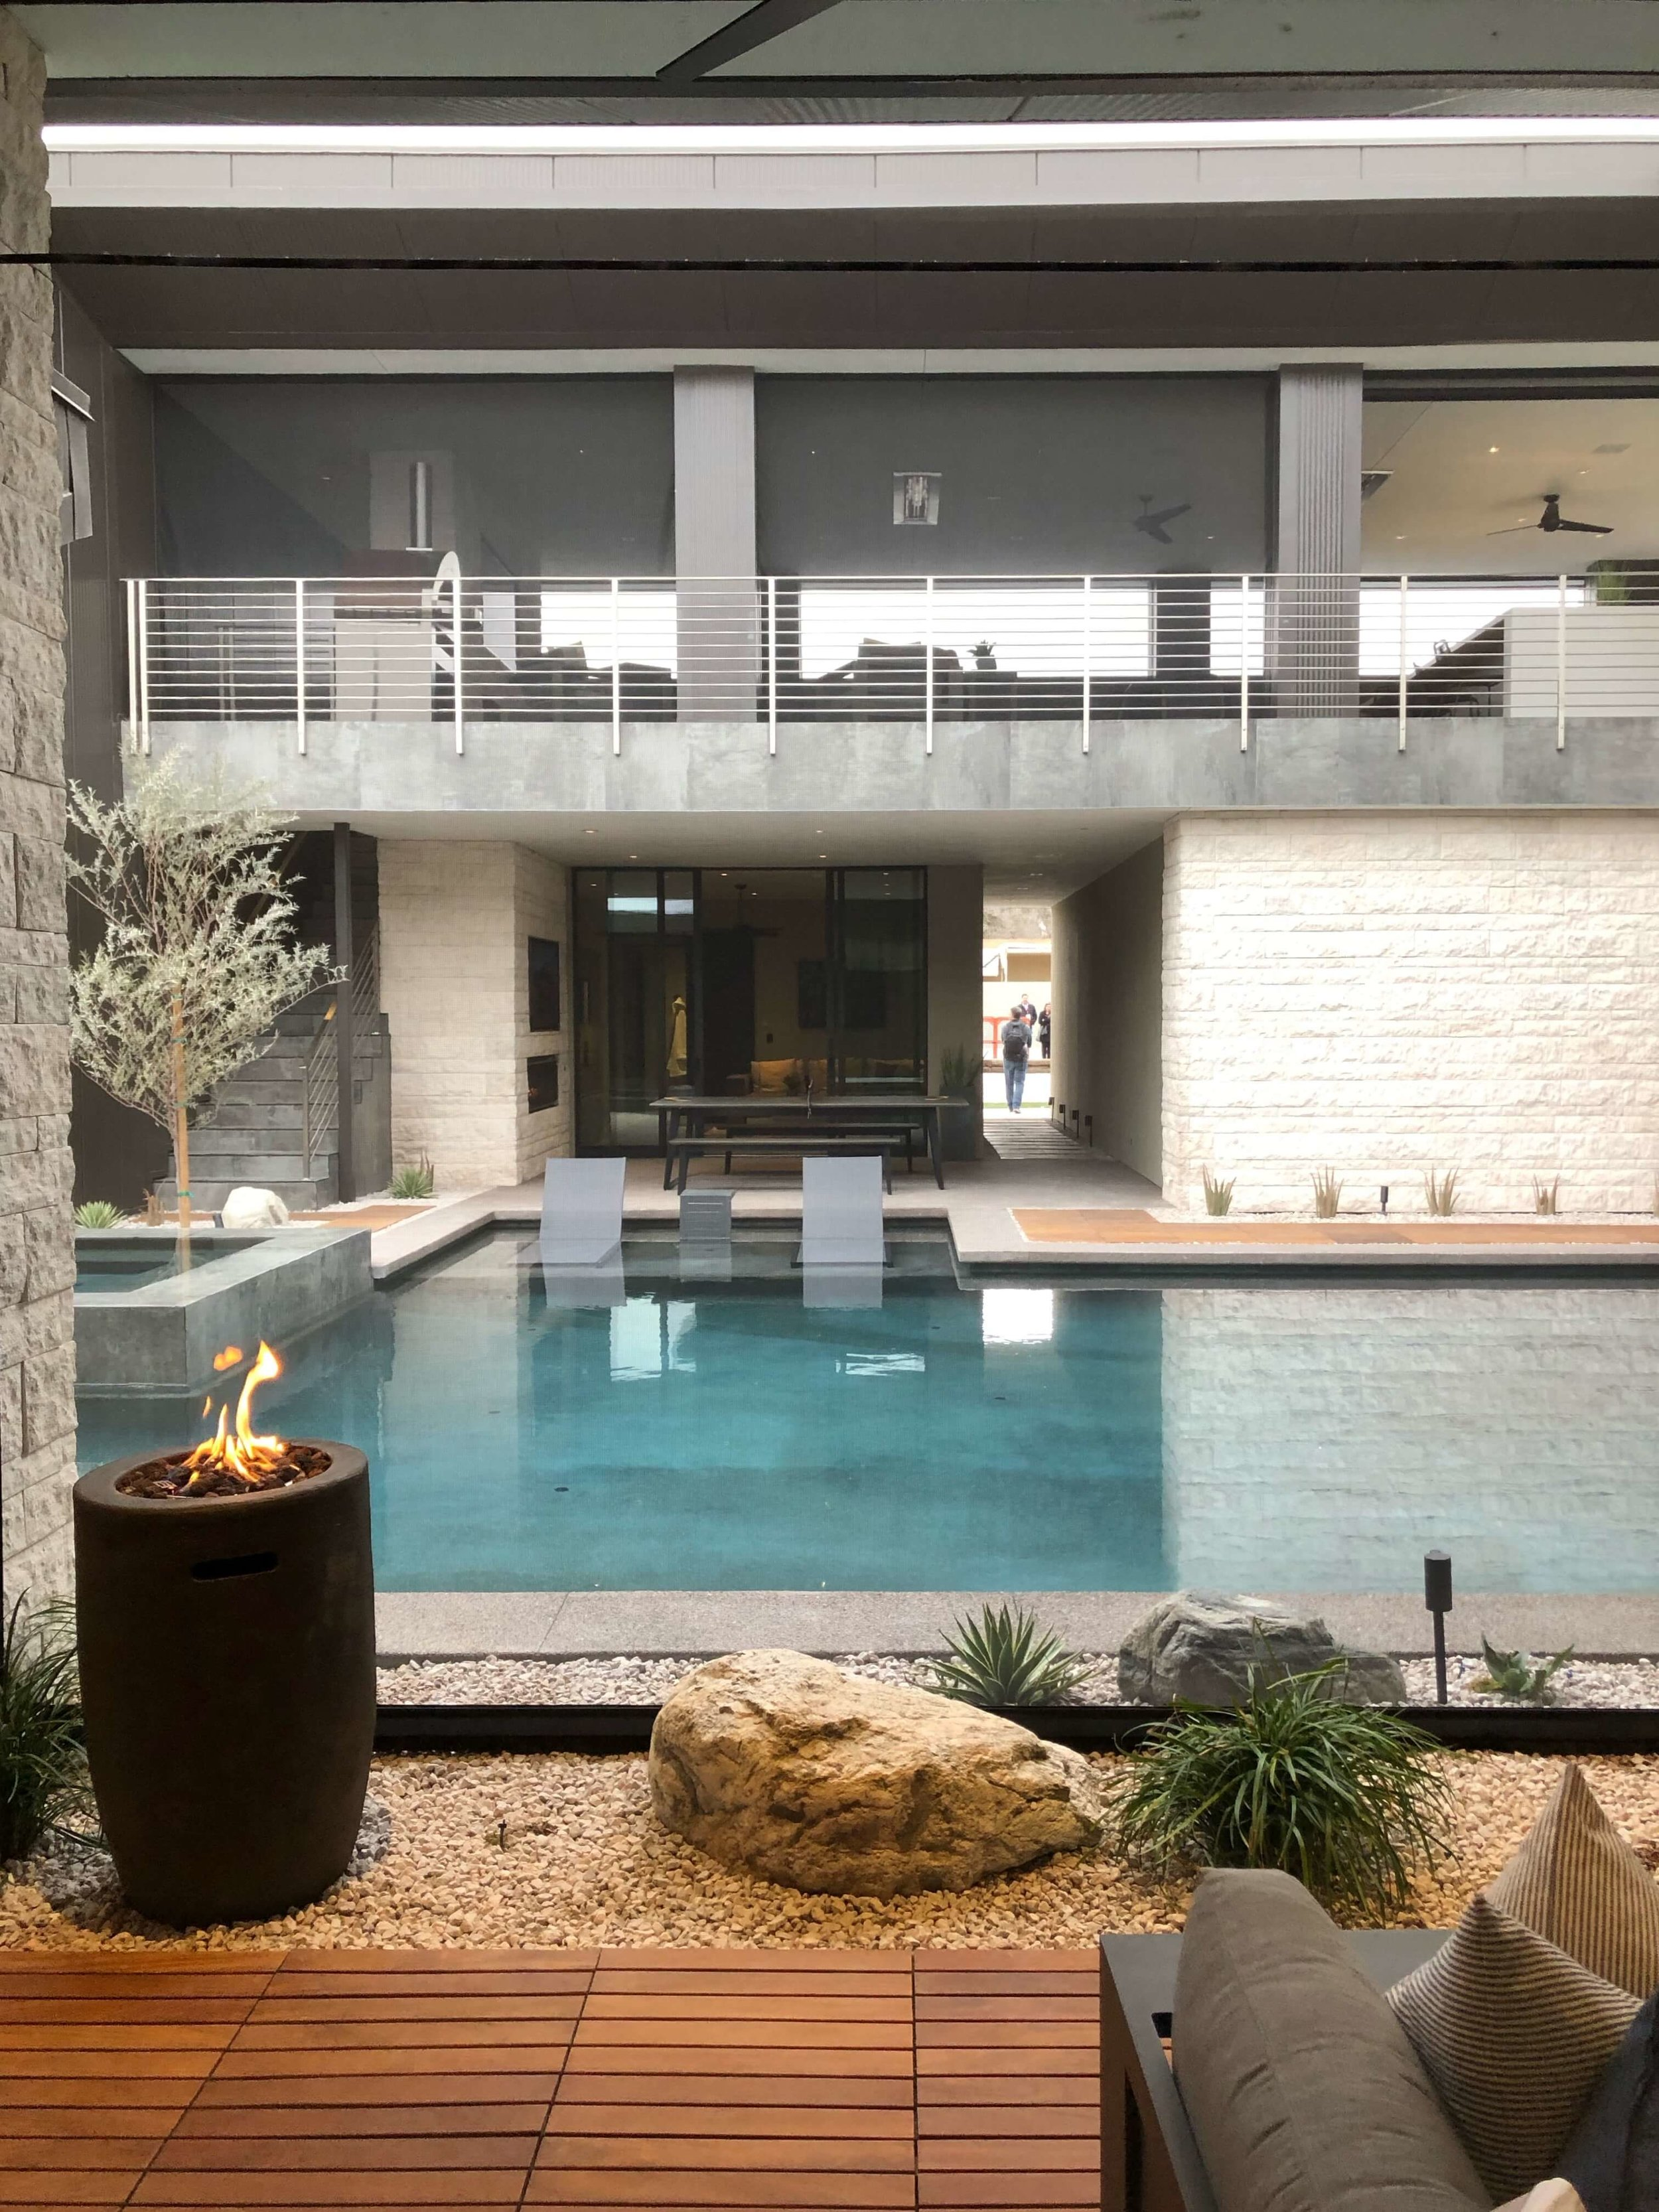 View from the patio off the living room to the pool in The New American Remodel 2019. #hometour #patio #contemporaryhome #pool